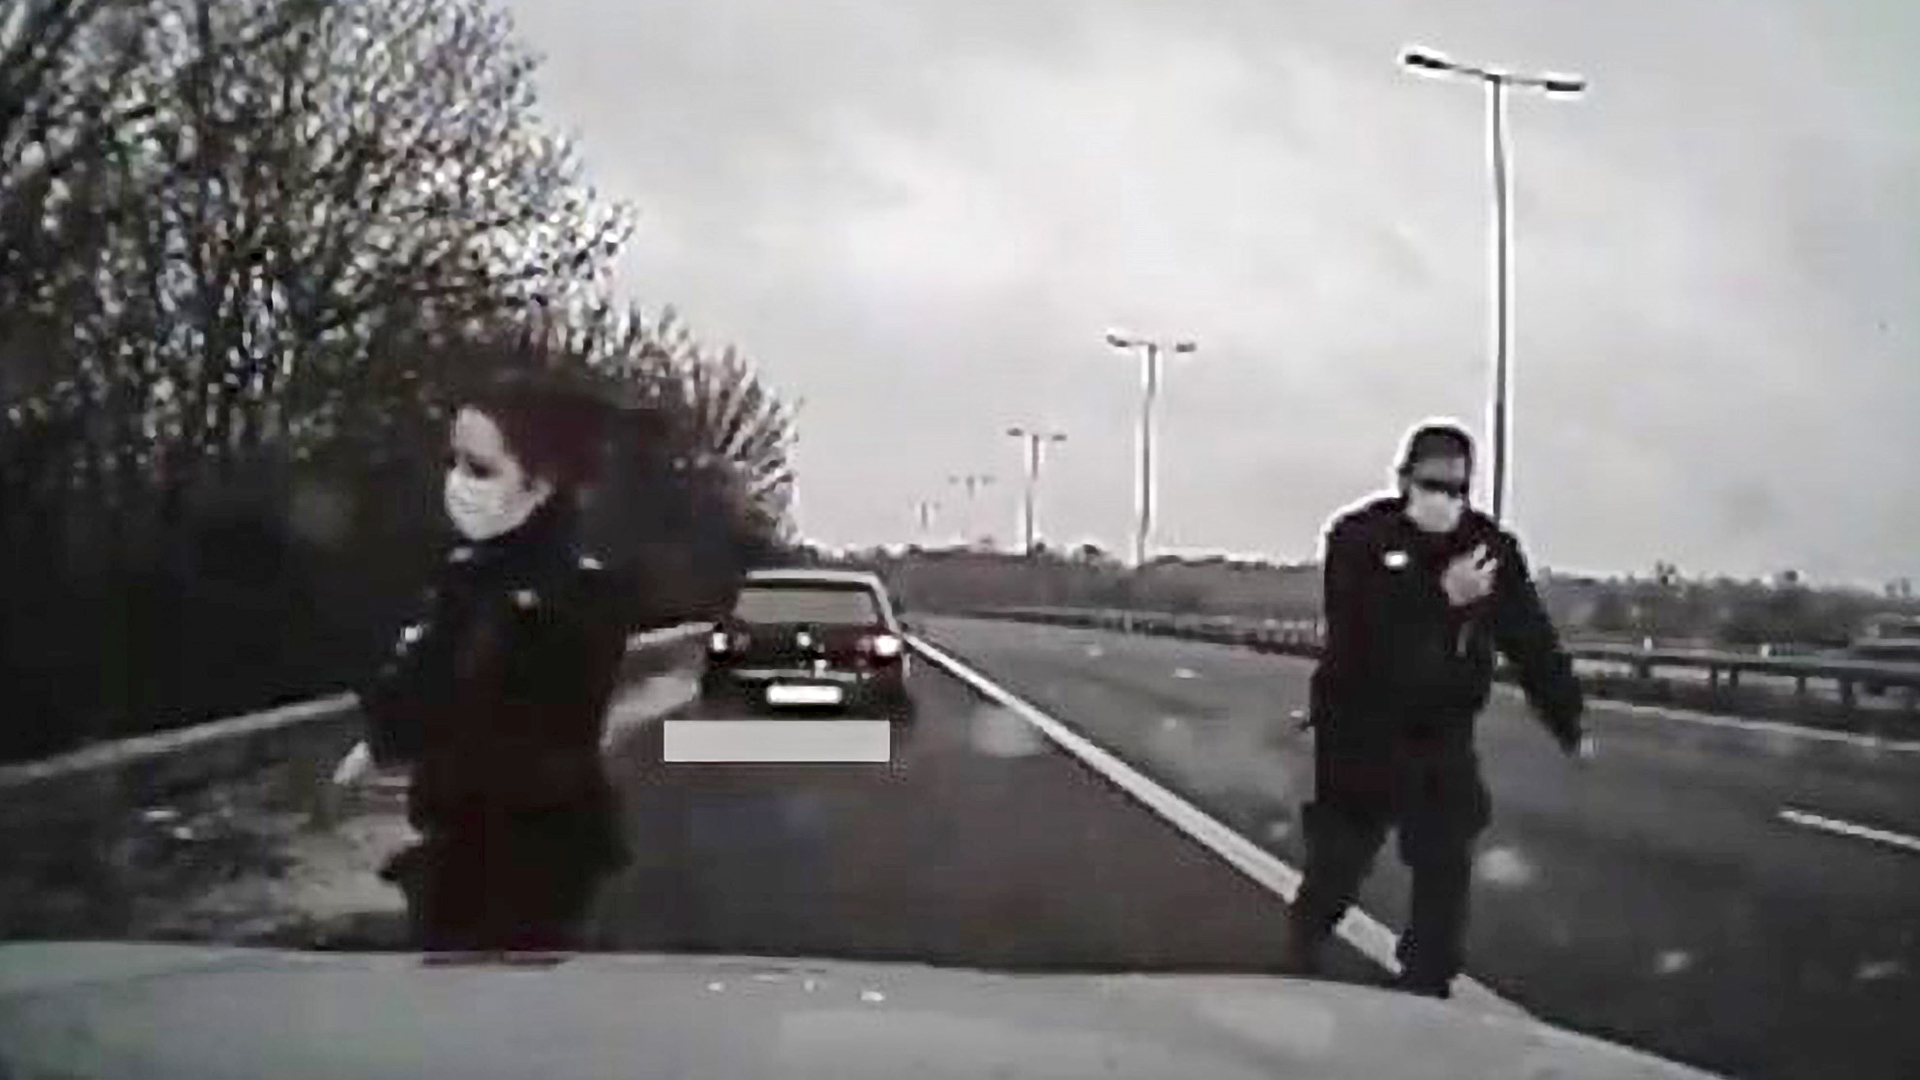 VIDEO: No Ice-cape: Driver Jailed After 130mph Police Car Chase In Snow